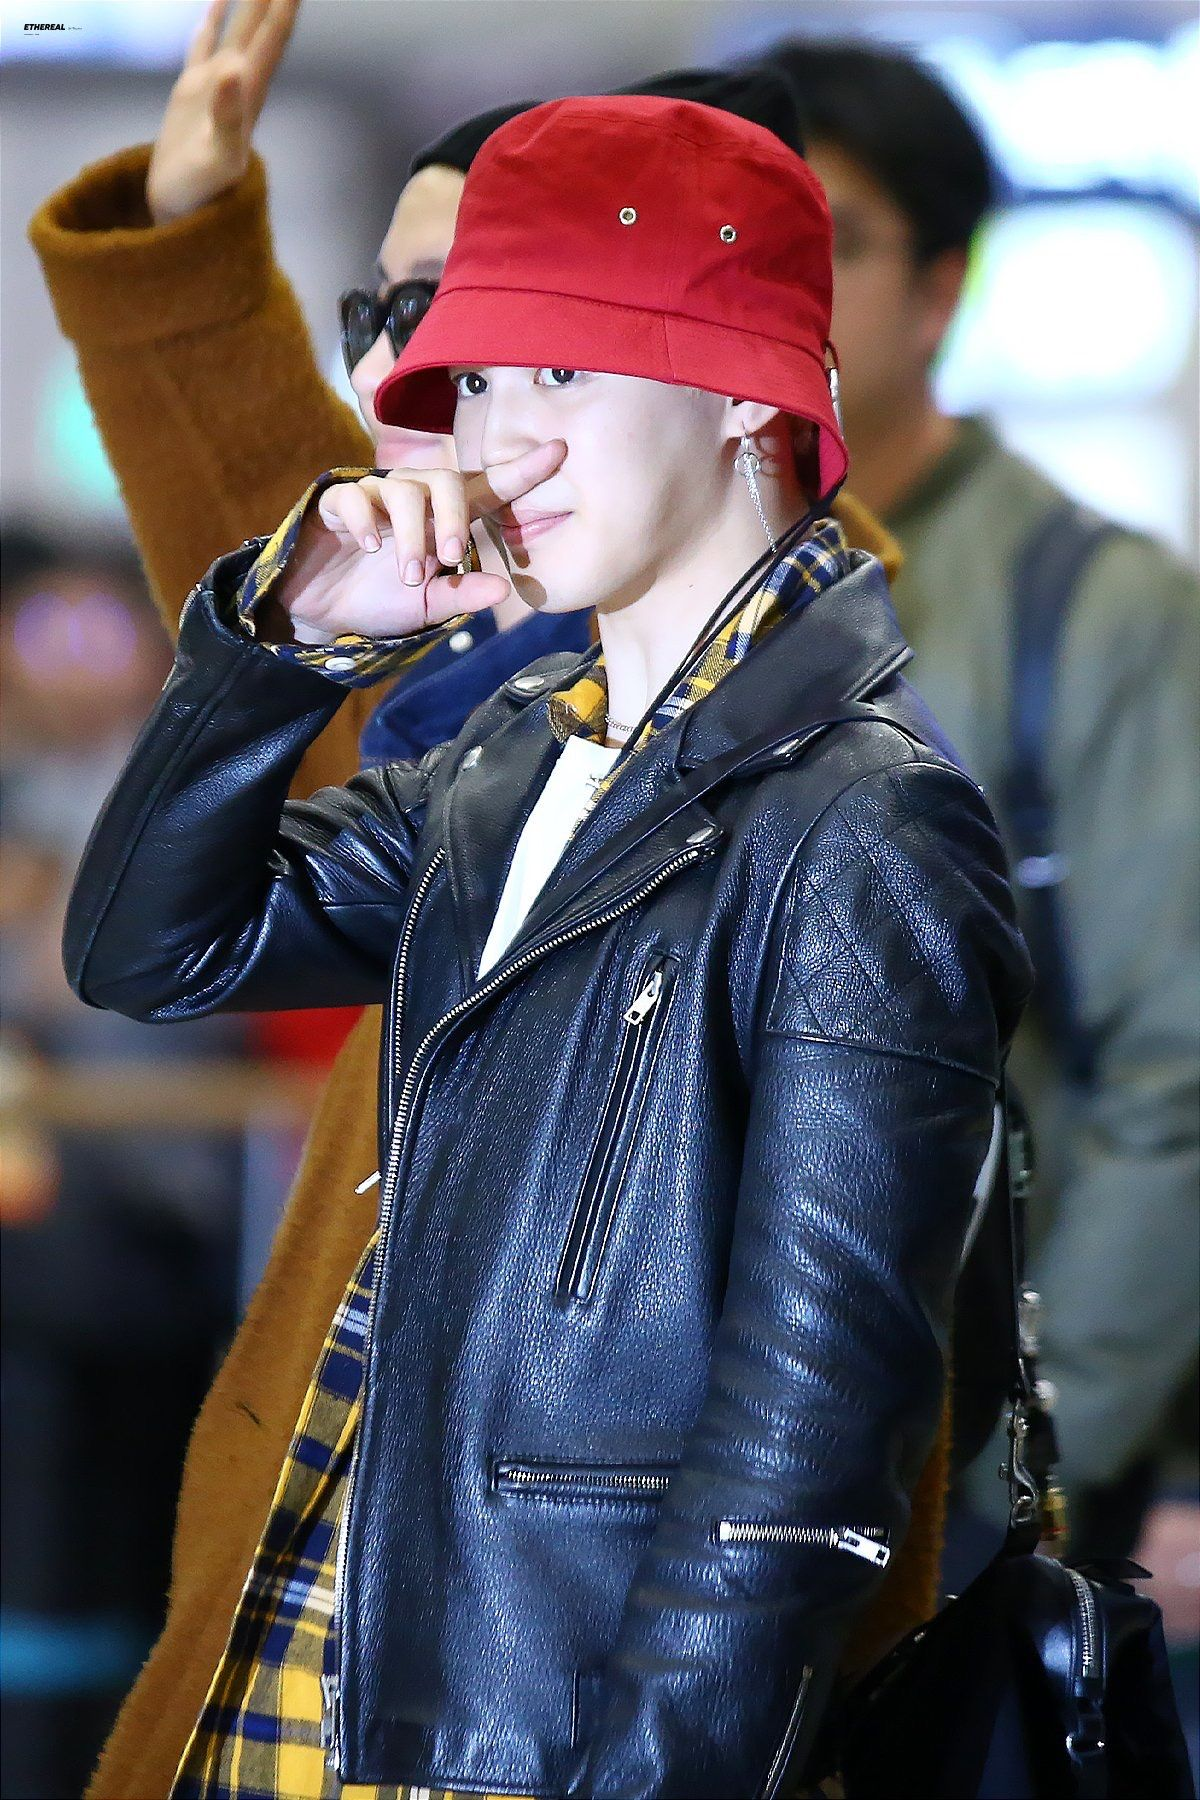 Pin By Toni On Bts Park Jimin Red Leather Jacket Hat Fashion Leather Jacket [ 1800 x 1200 Pixel ]